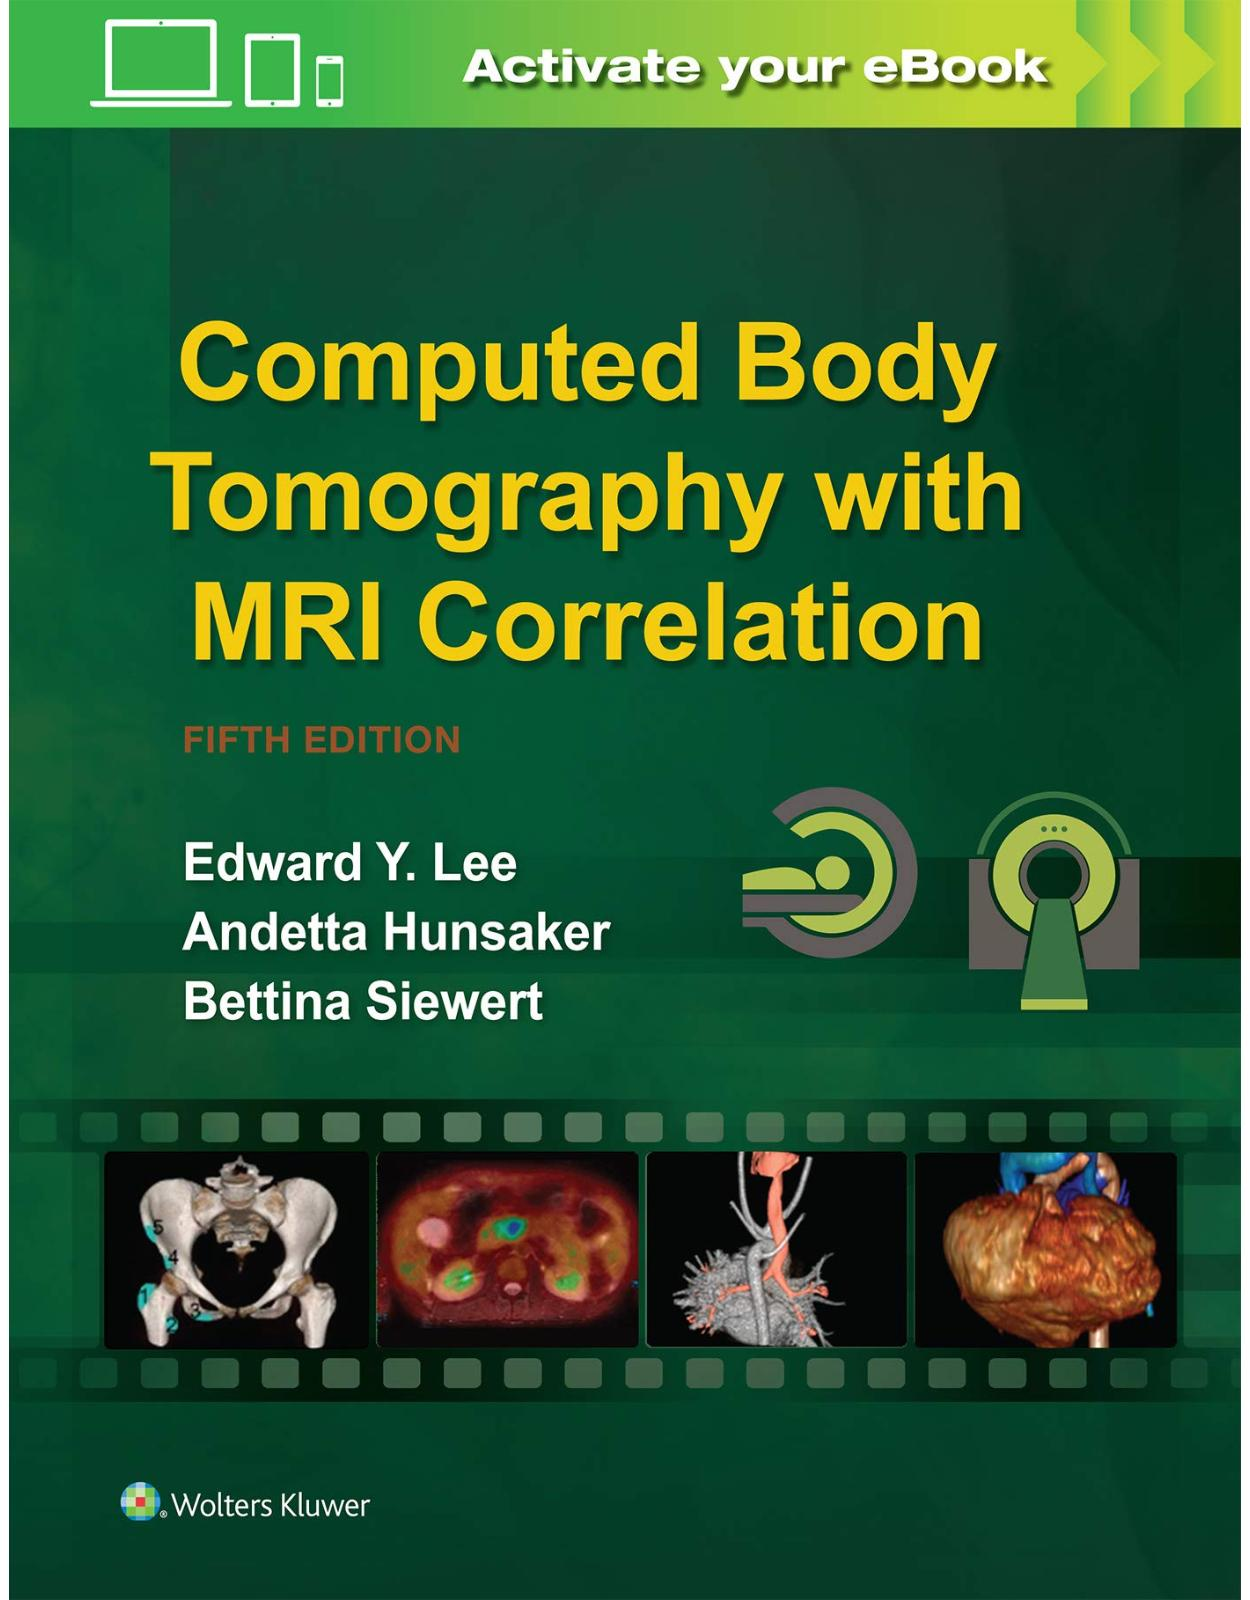 Computed Body Tomography with MRI Correlation. Fifth edition